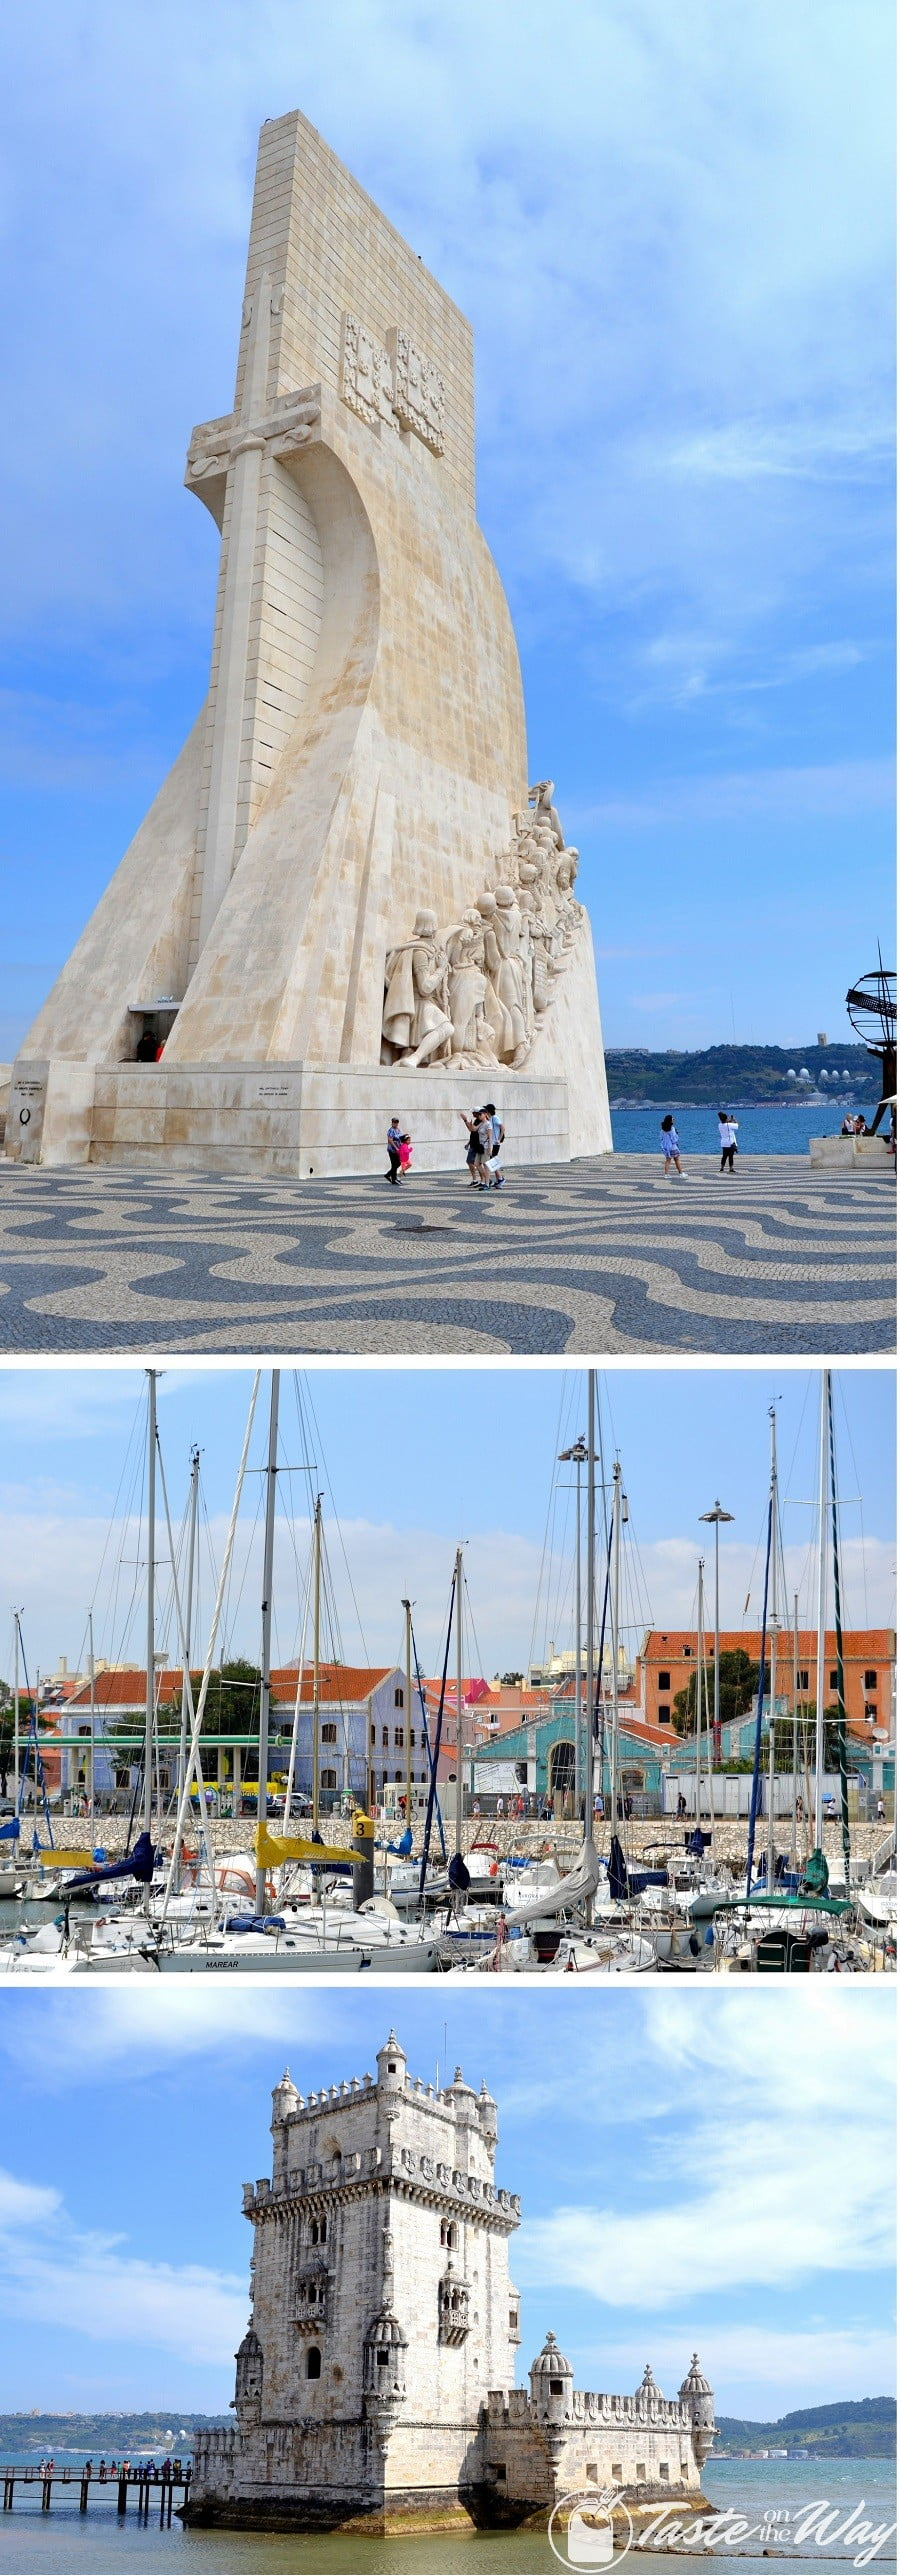 Top 15+ Best Things to Do in Lisbon, Portugal - One of the top fun #thingstodo in #Lisbon, #Portugal is to visit the Belem Tower. Check out for more! #travel #photography @tasteontheway